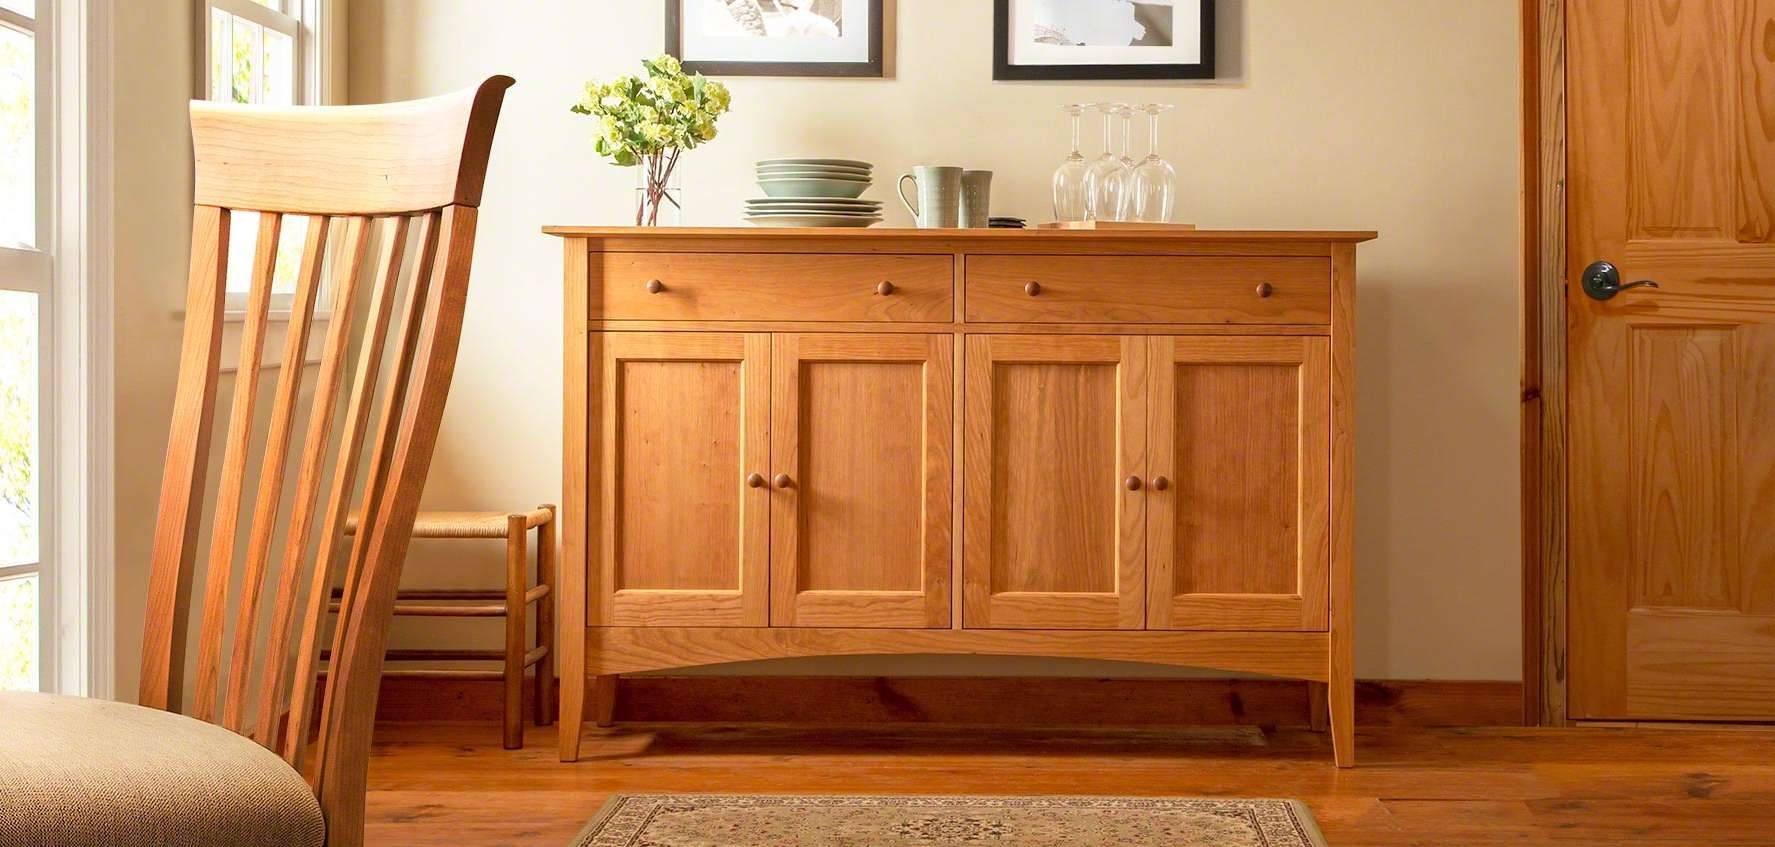 Solid Wood Sideboards, Buffets, & Hutches – Vermont Woods Studios Within Wooden Sideboards And Buffets (View 16 of 20)